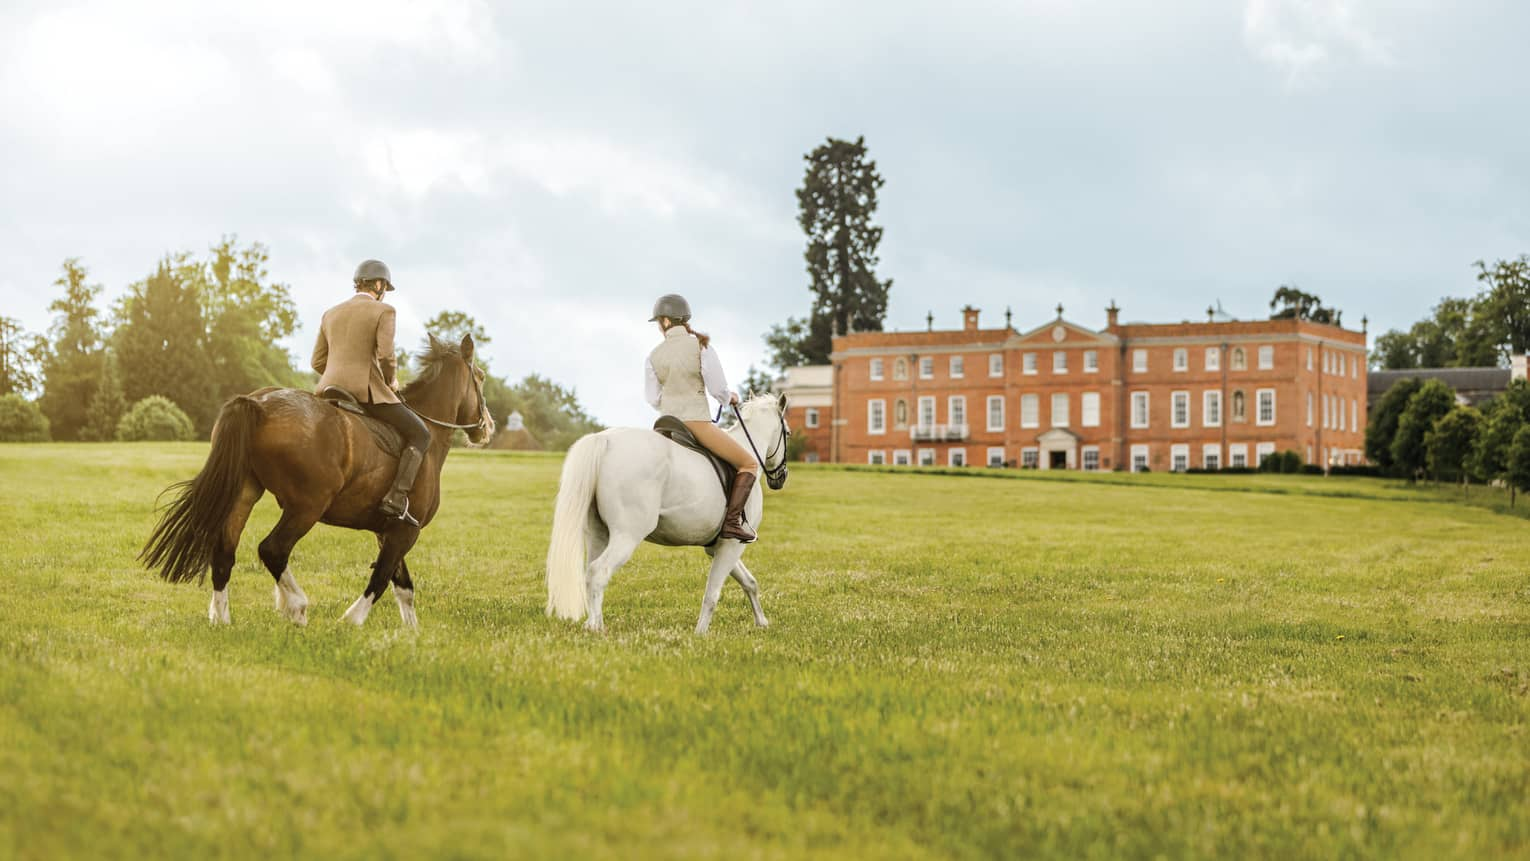 Couple rides horses across green English field to Four Seasons Hotel Hampshire building